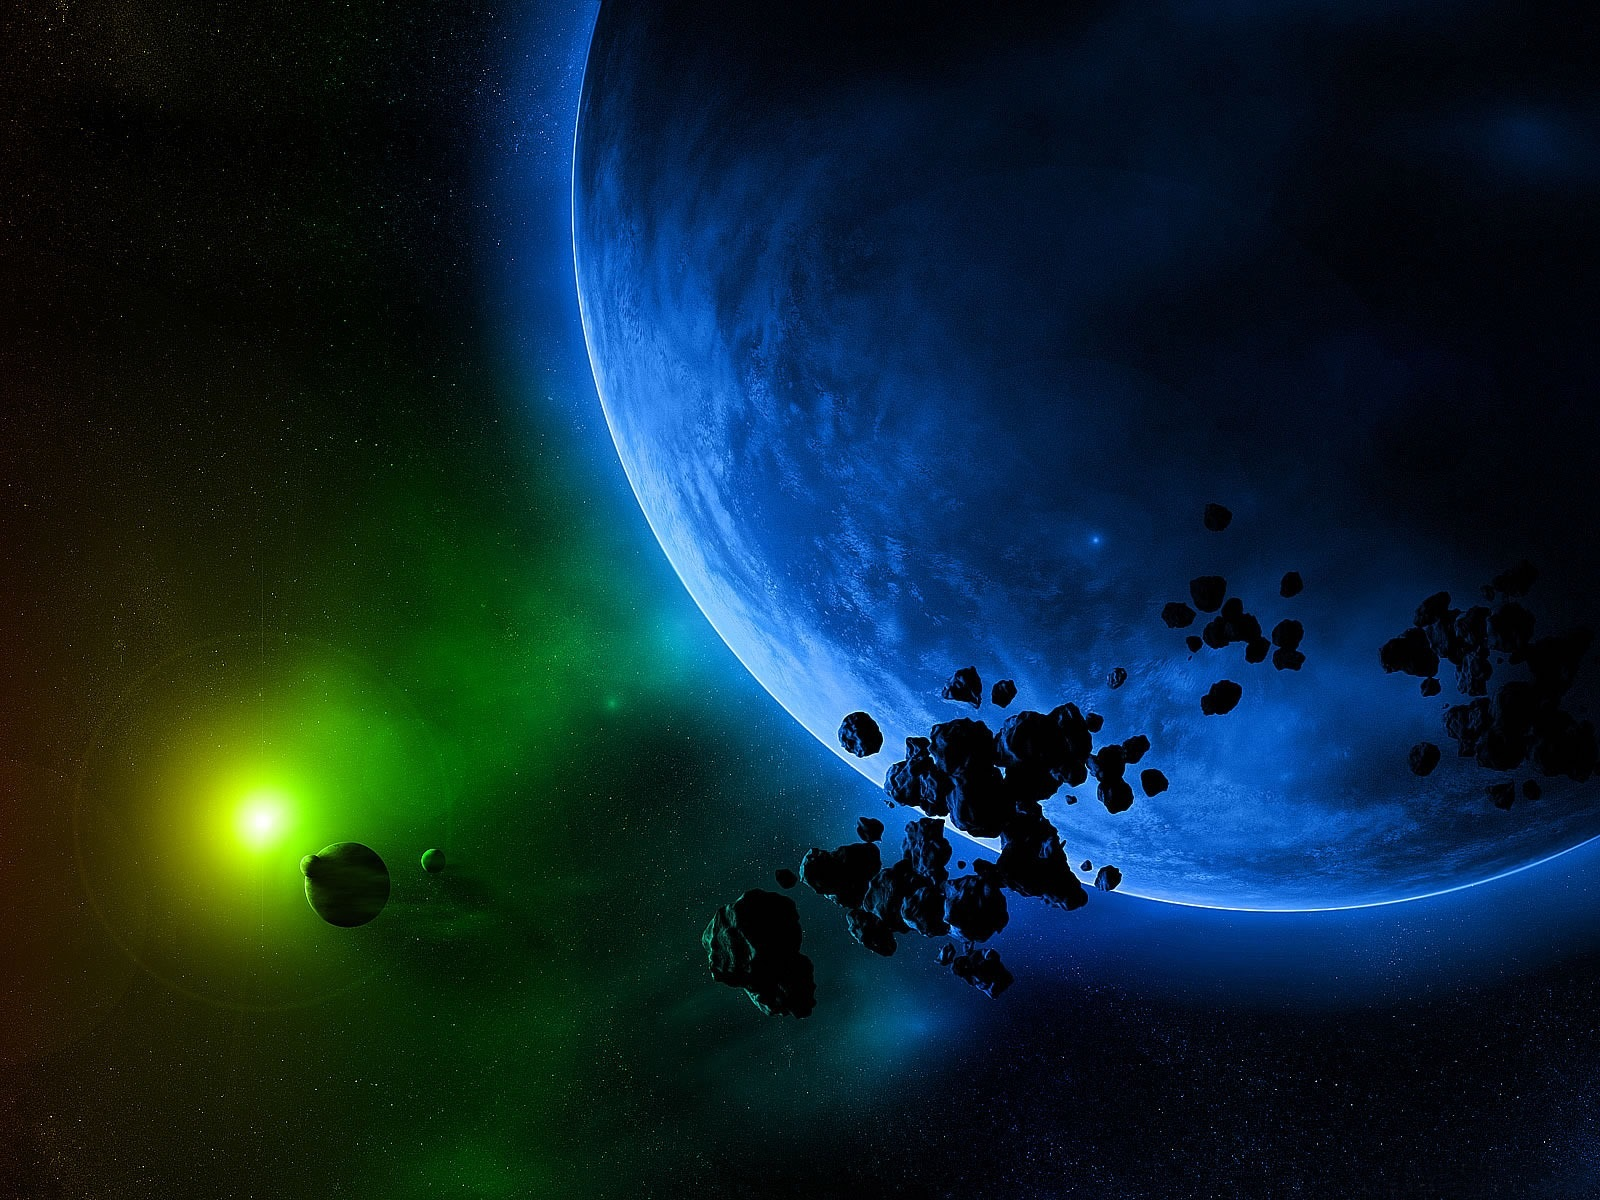 wallpaper green light and blue planet 1600x1200 hd picture, image